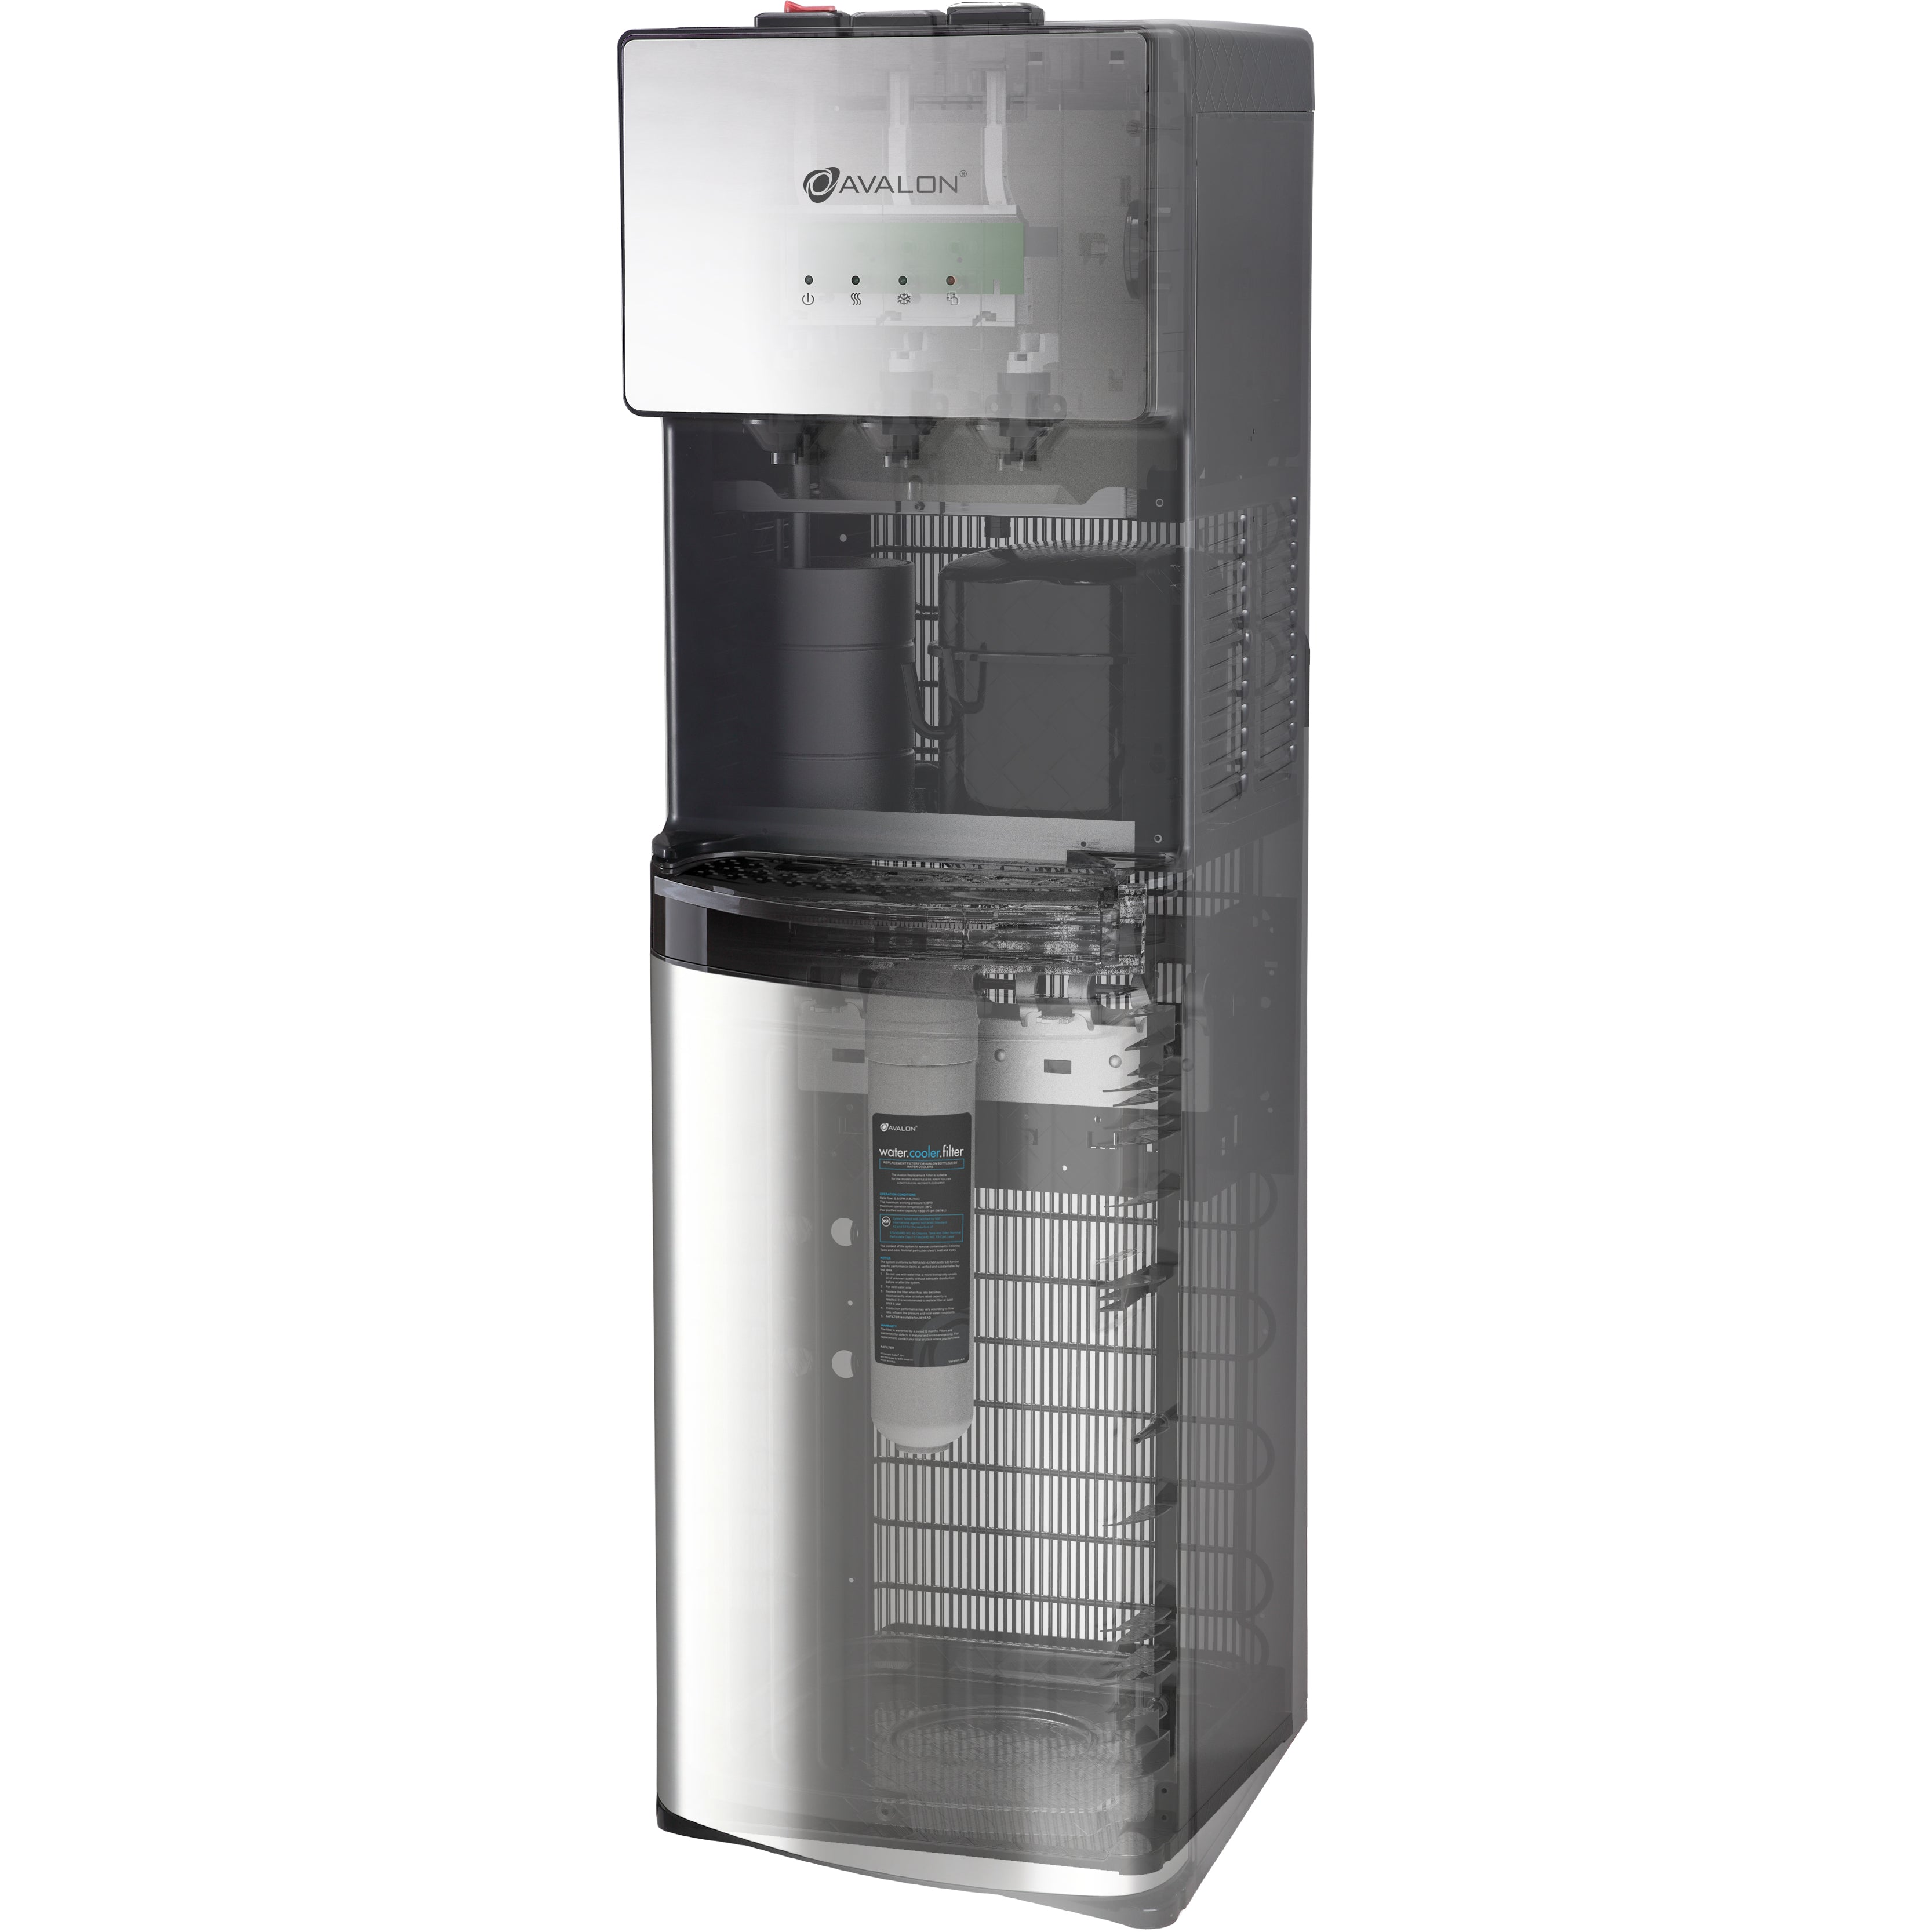 Avalon Bottleless Water Cooler Filter For Avalon Water Coolers Purchas